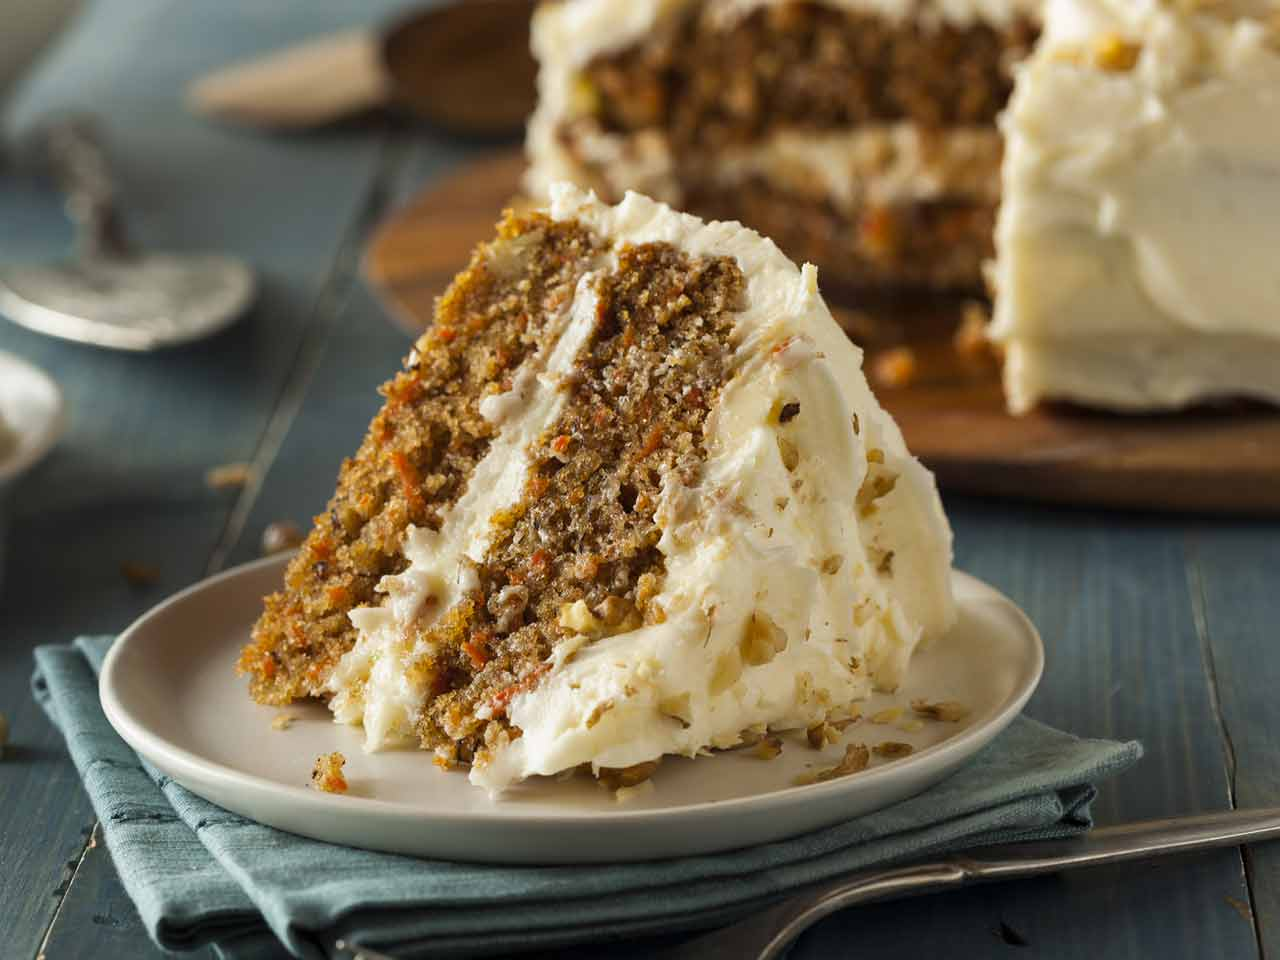 Carrot and honey cake